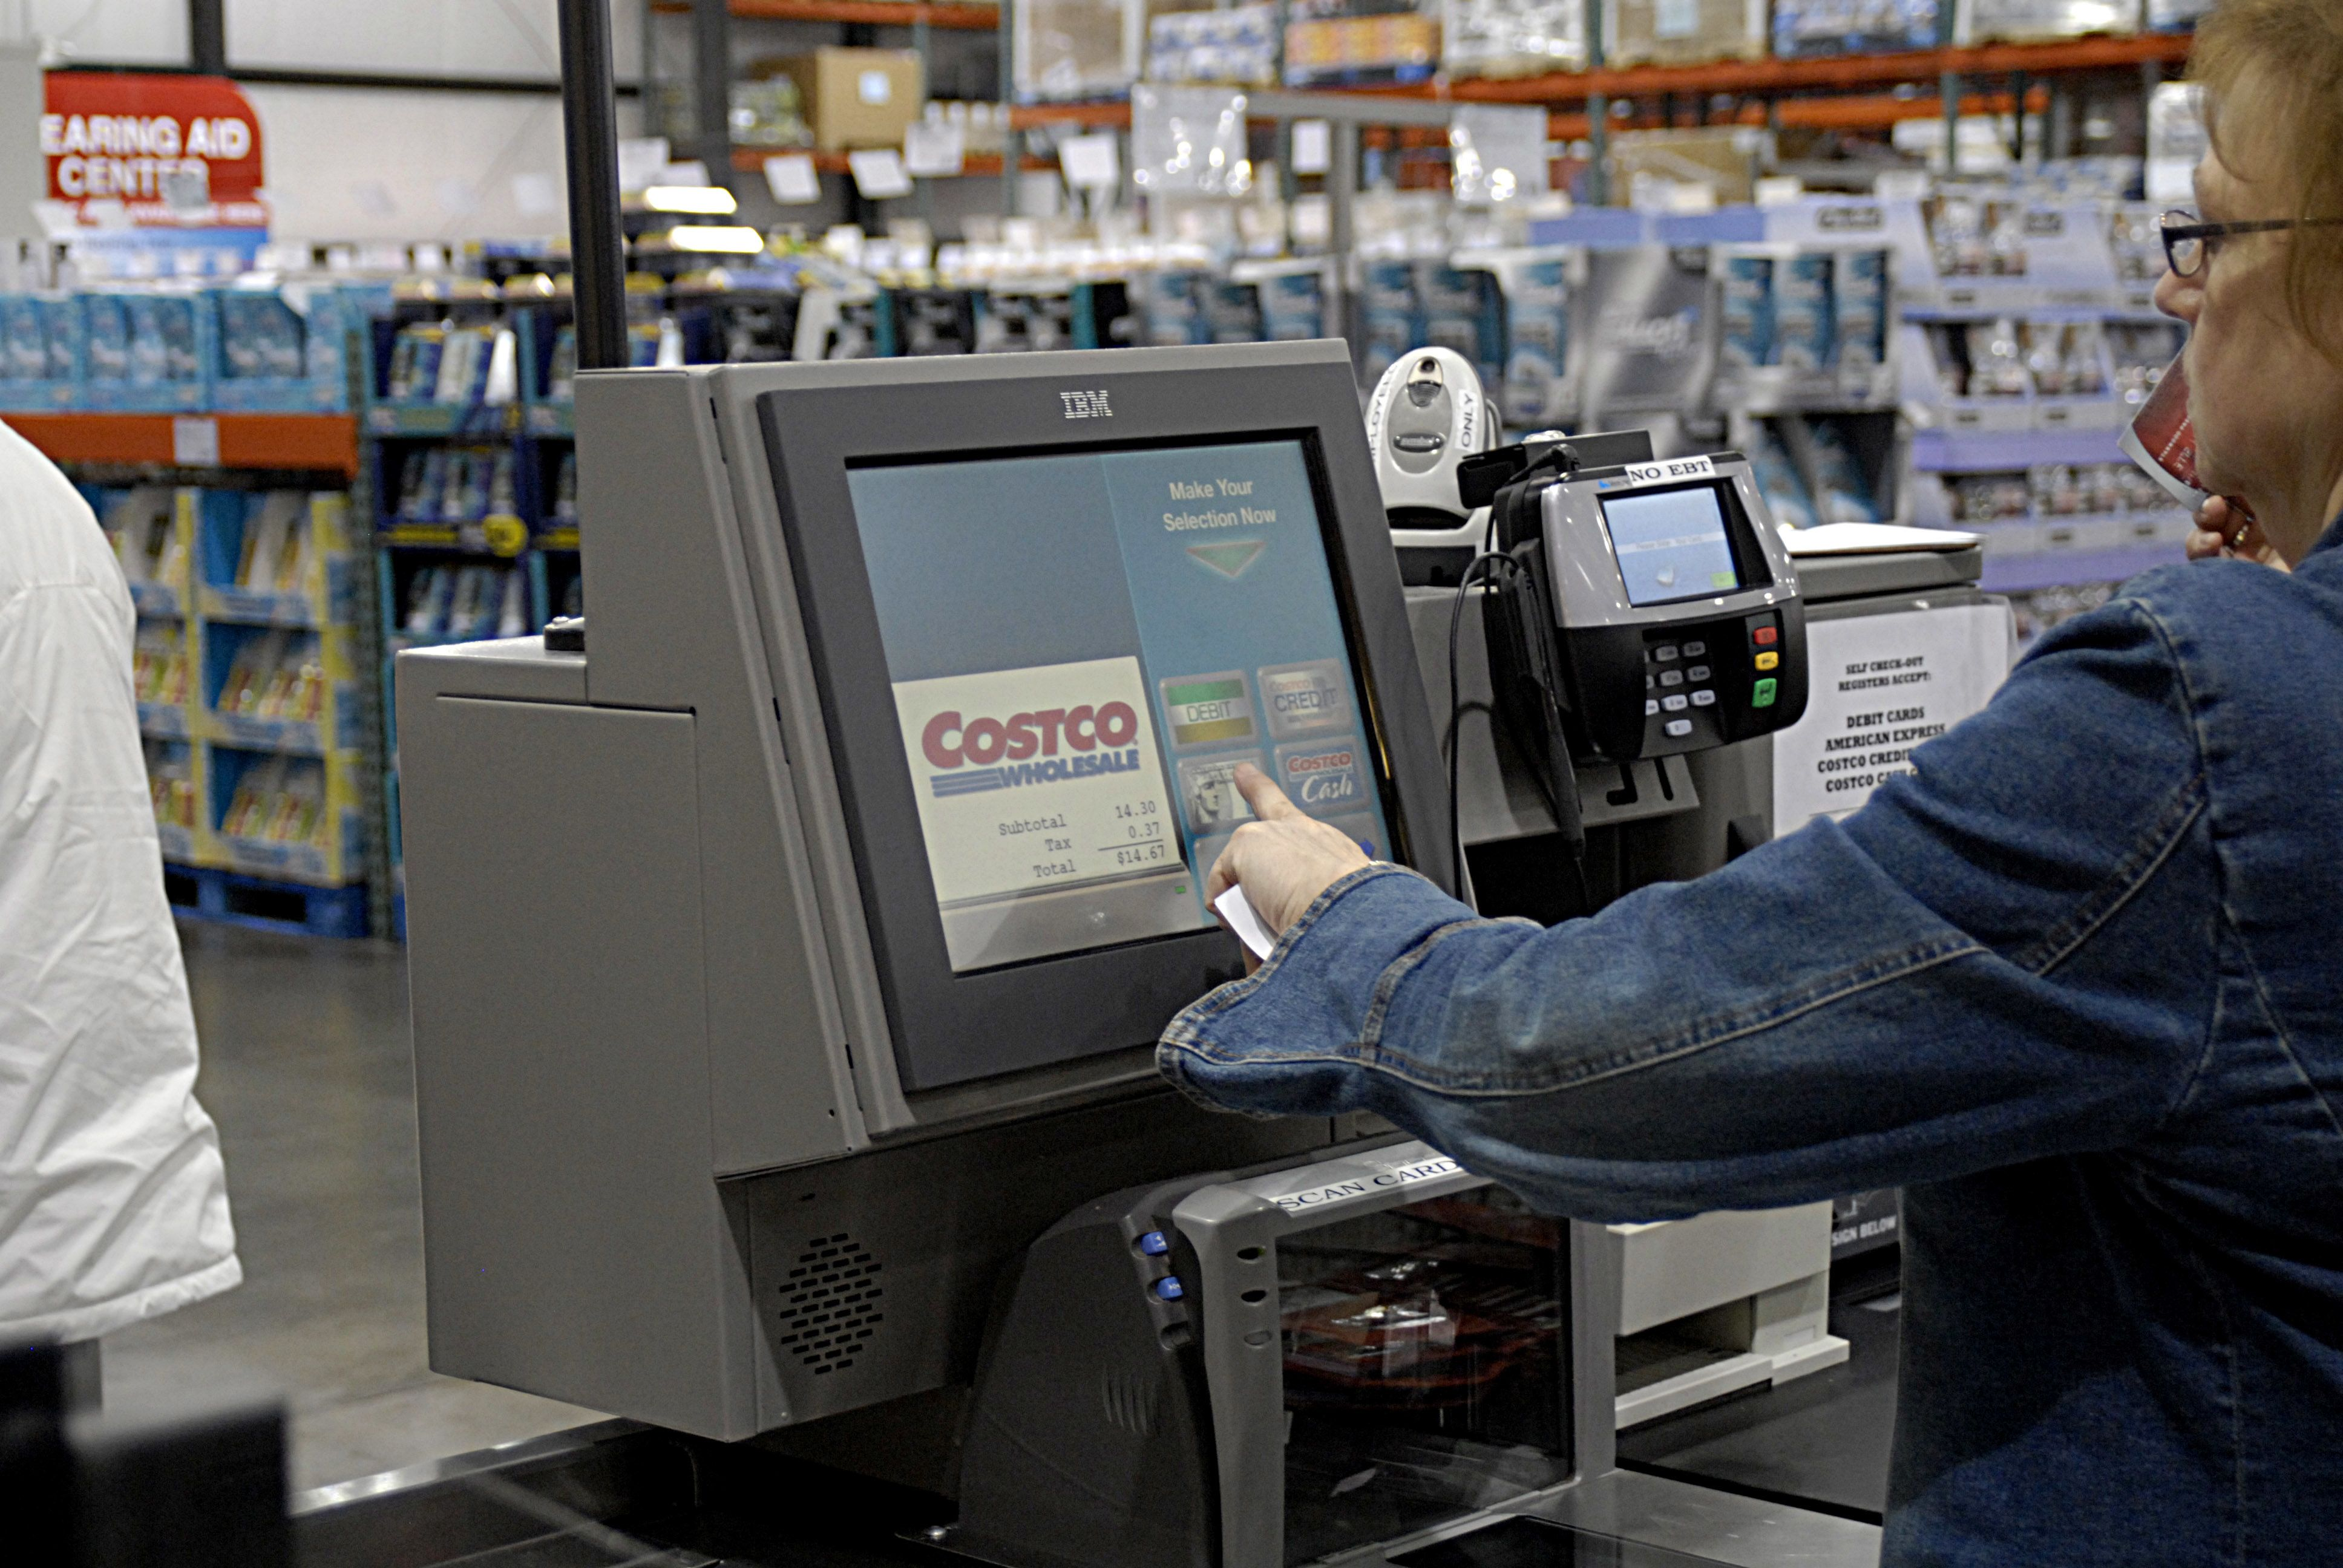 Costco Membership Secrets - 25 Things You Never Knew About